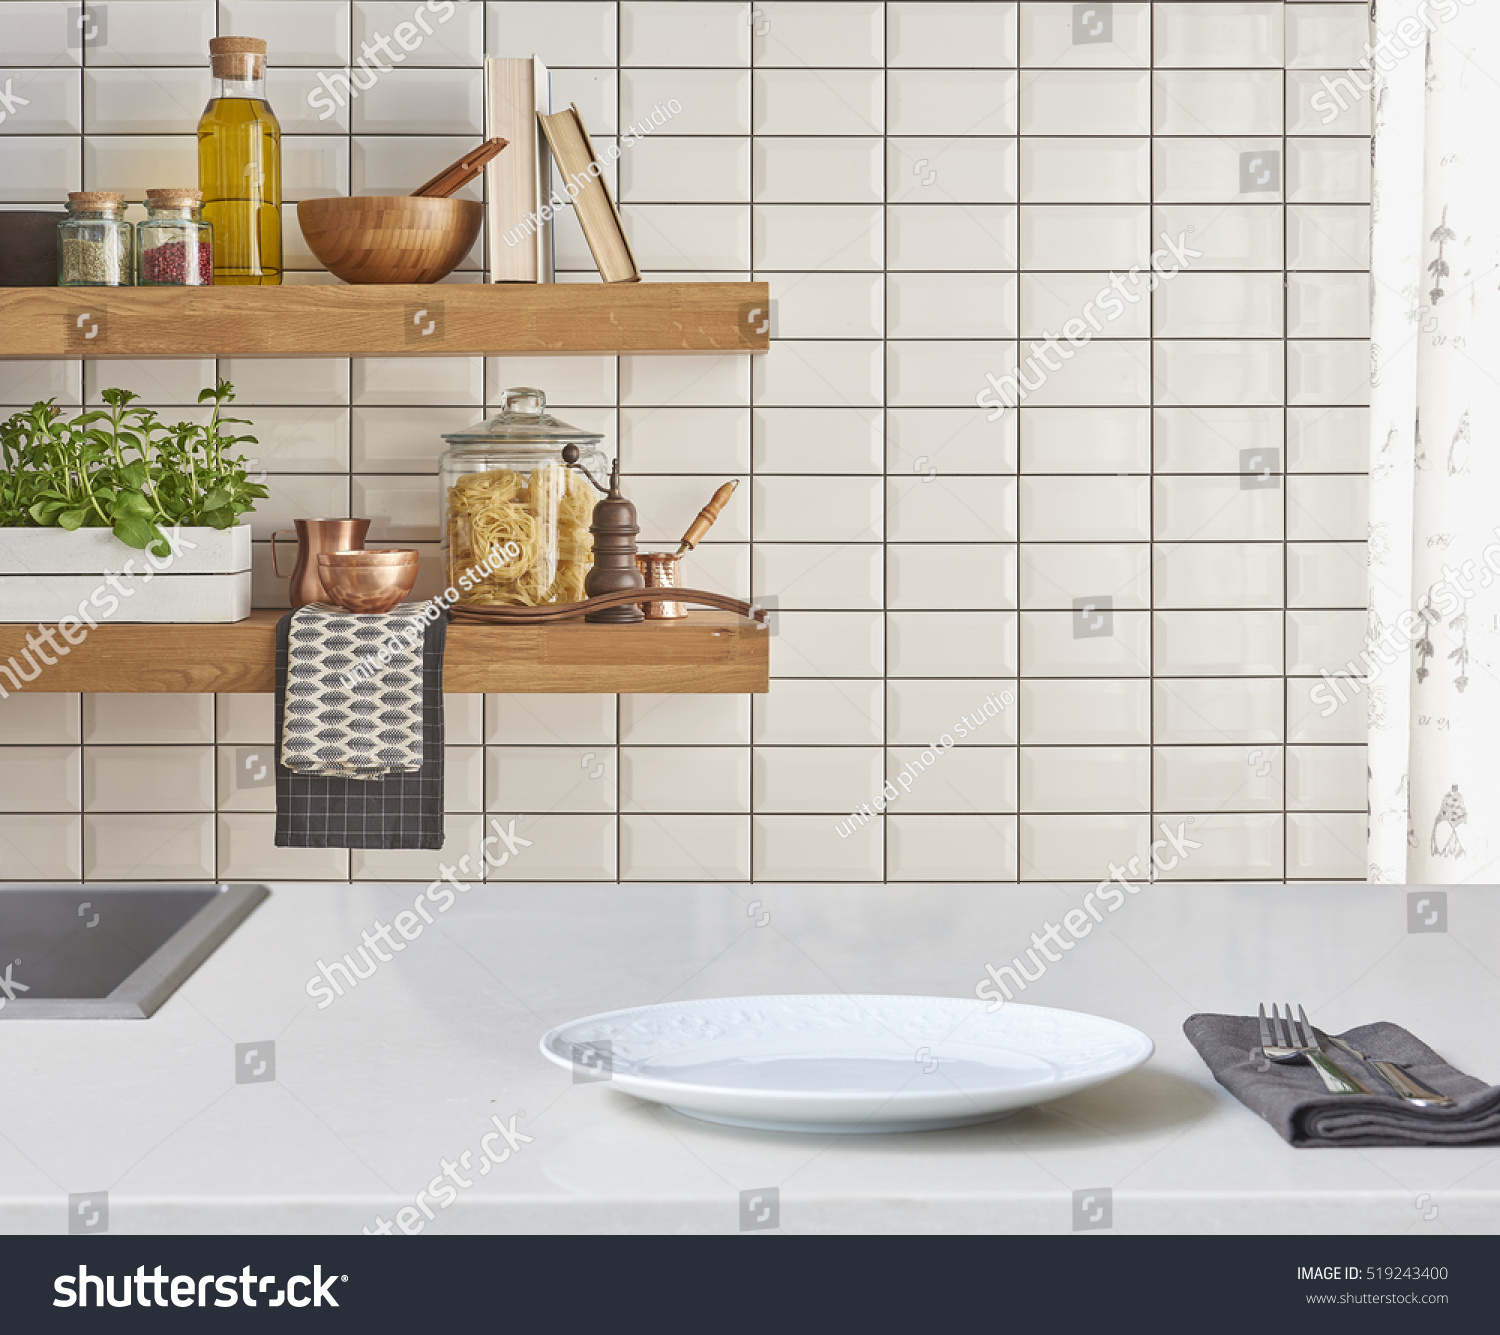 White Tile Kitchen Table Background Modern Tiles Wall White Table Stock Photo